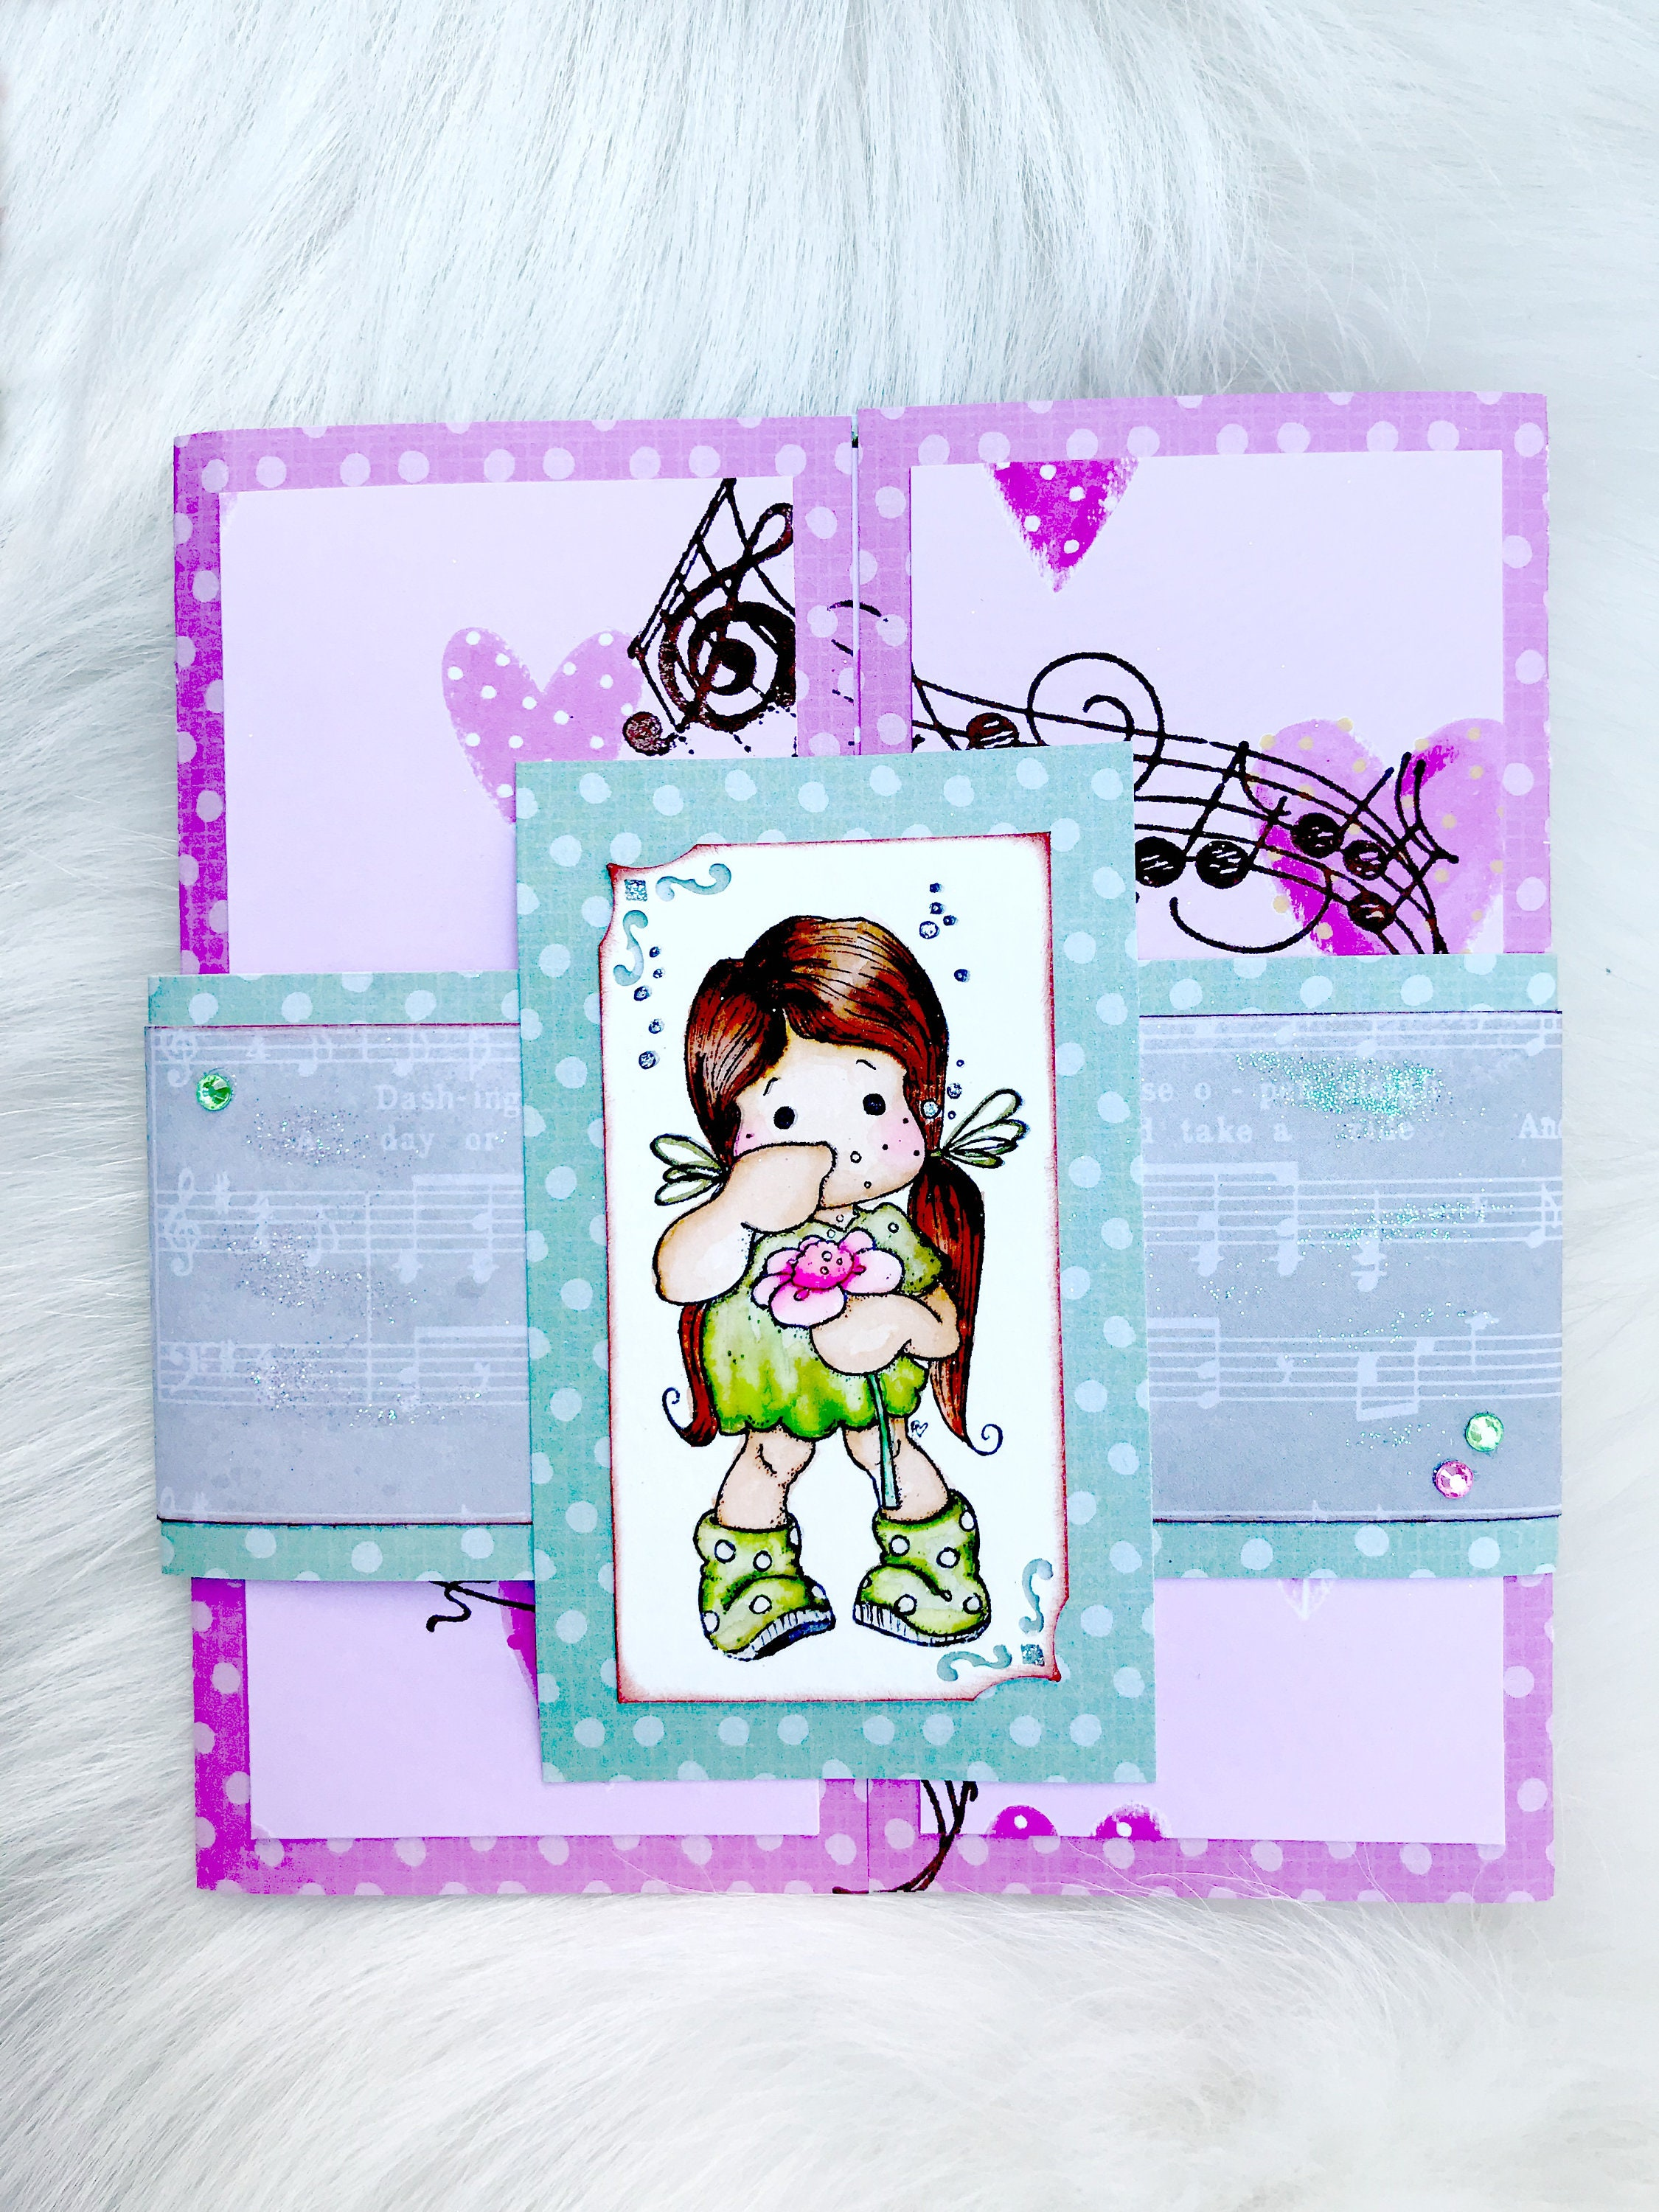 Sweet 16 Card Daughter Handmade Cards Best Friend Prom Birthday Anniversary Wedding Greeting